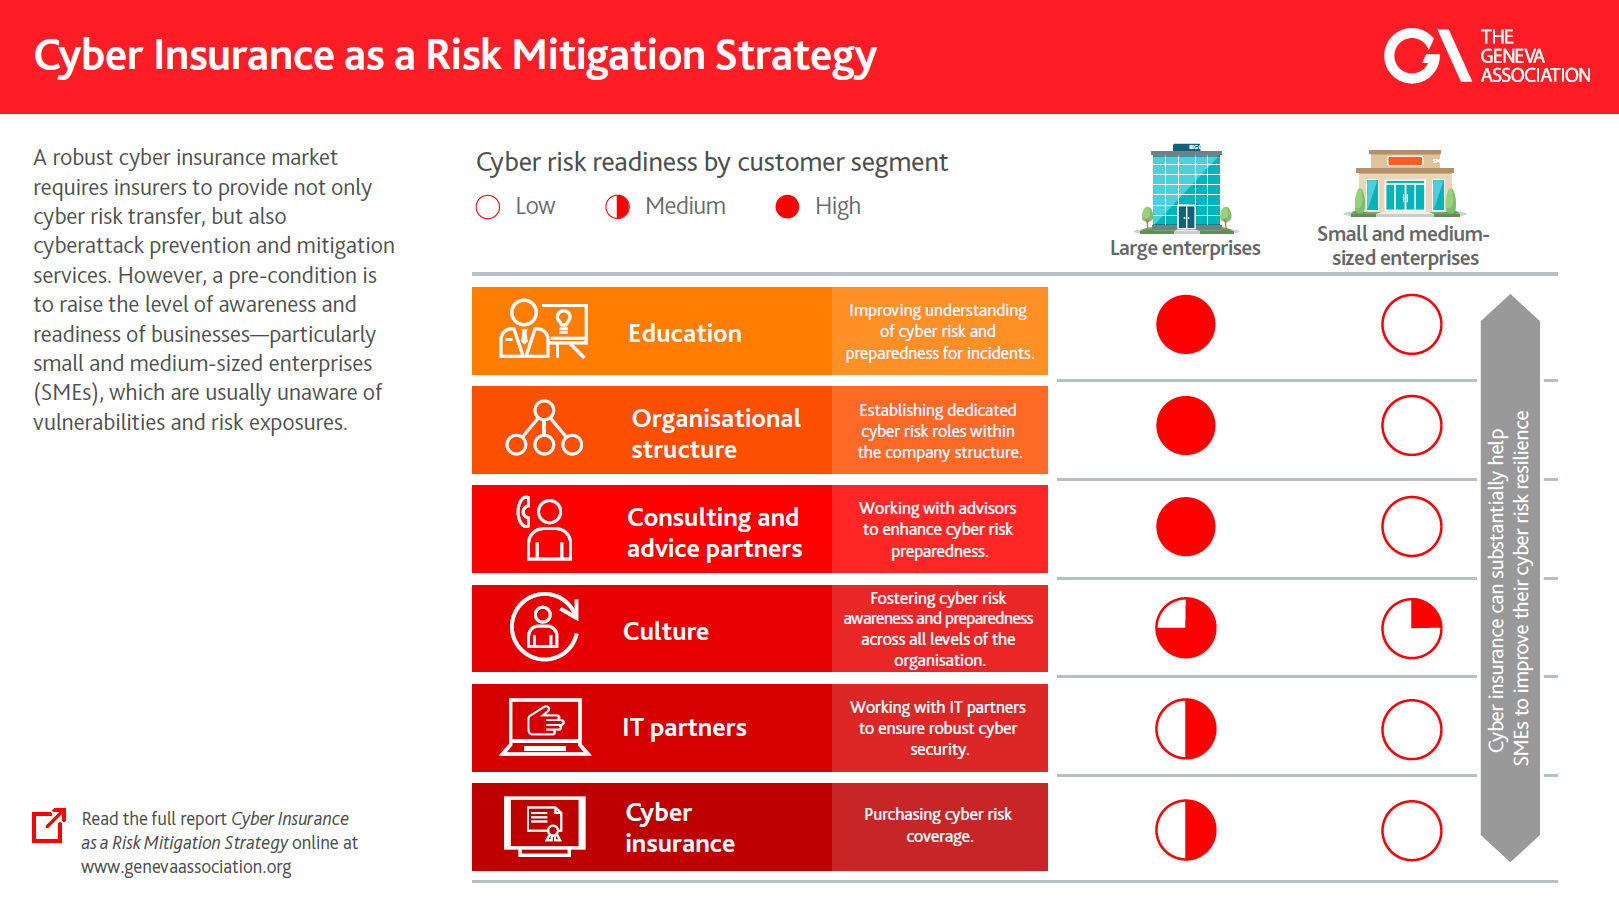 Cyber risk readiness by customer segment